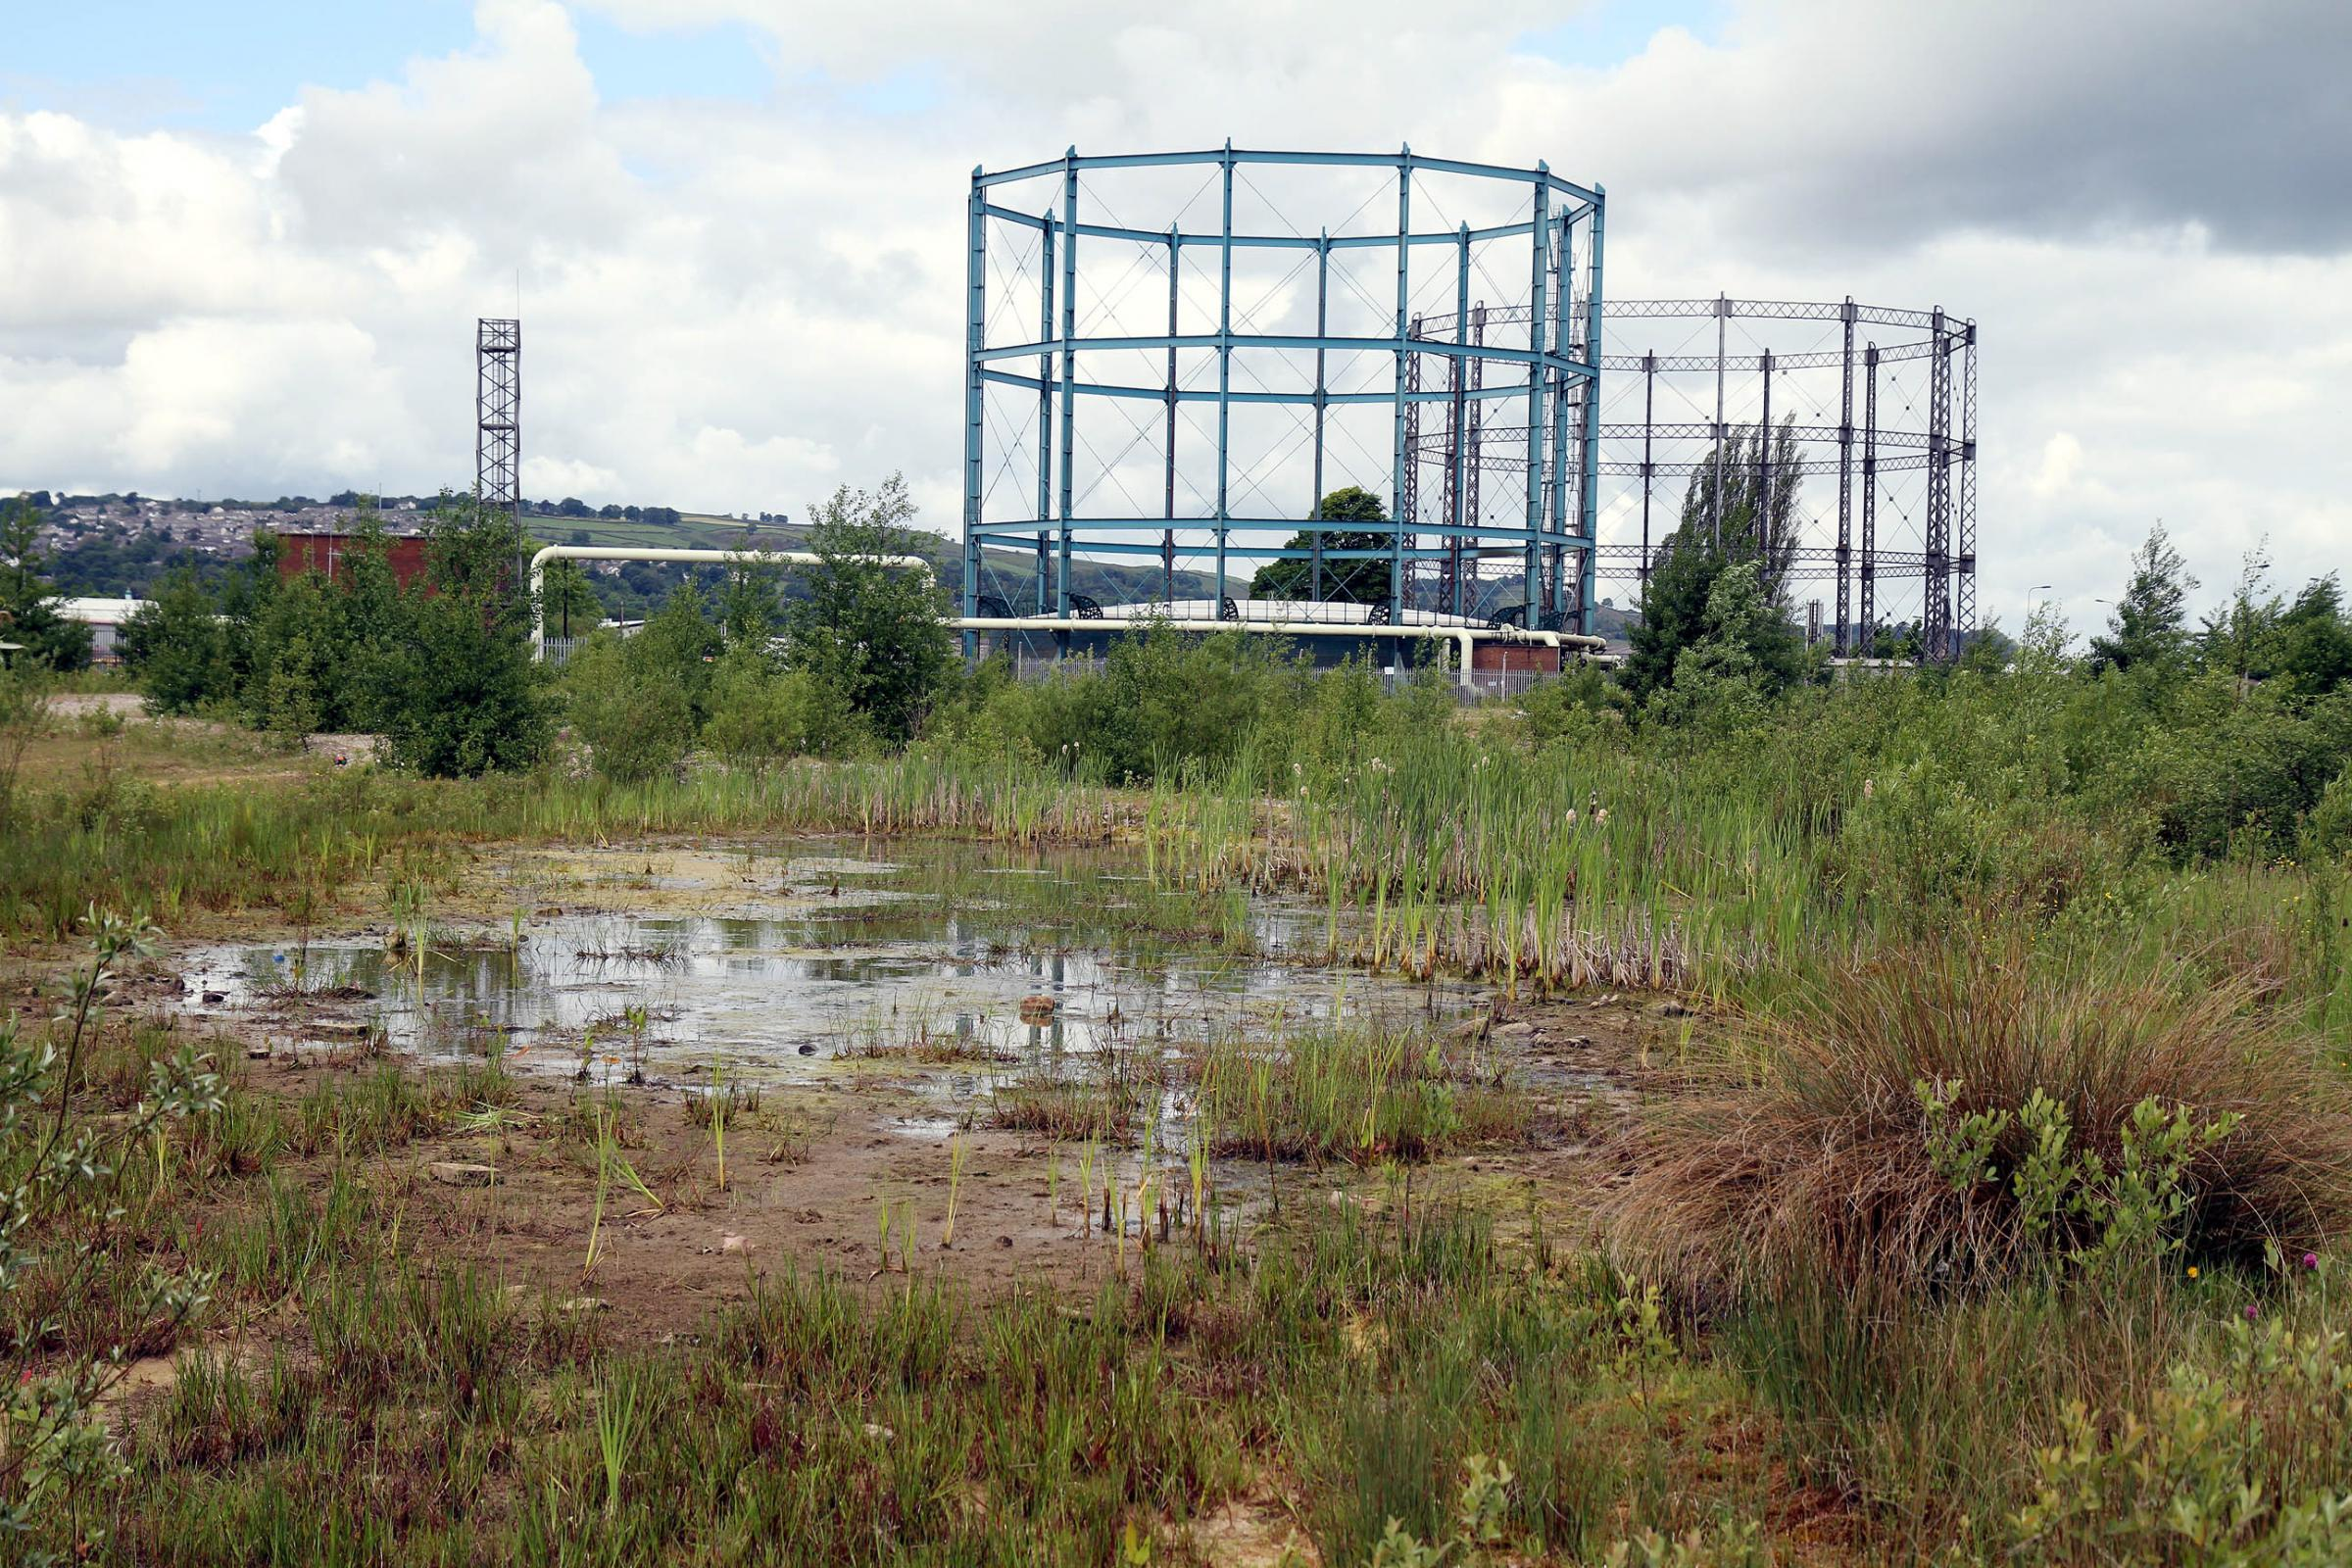 The former gasworks site at Marley, where a proposed energy plant has been refused permission